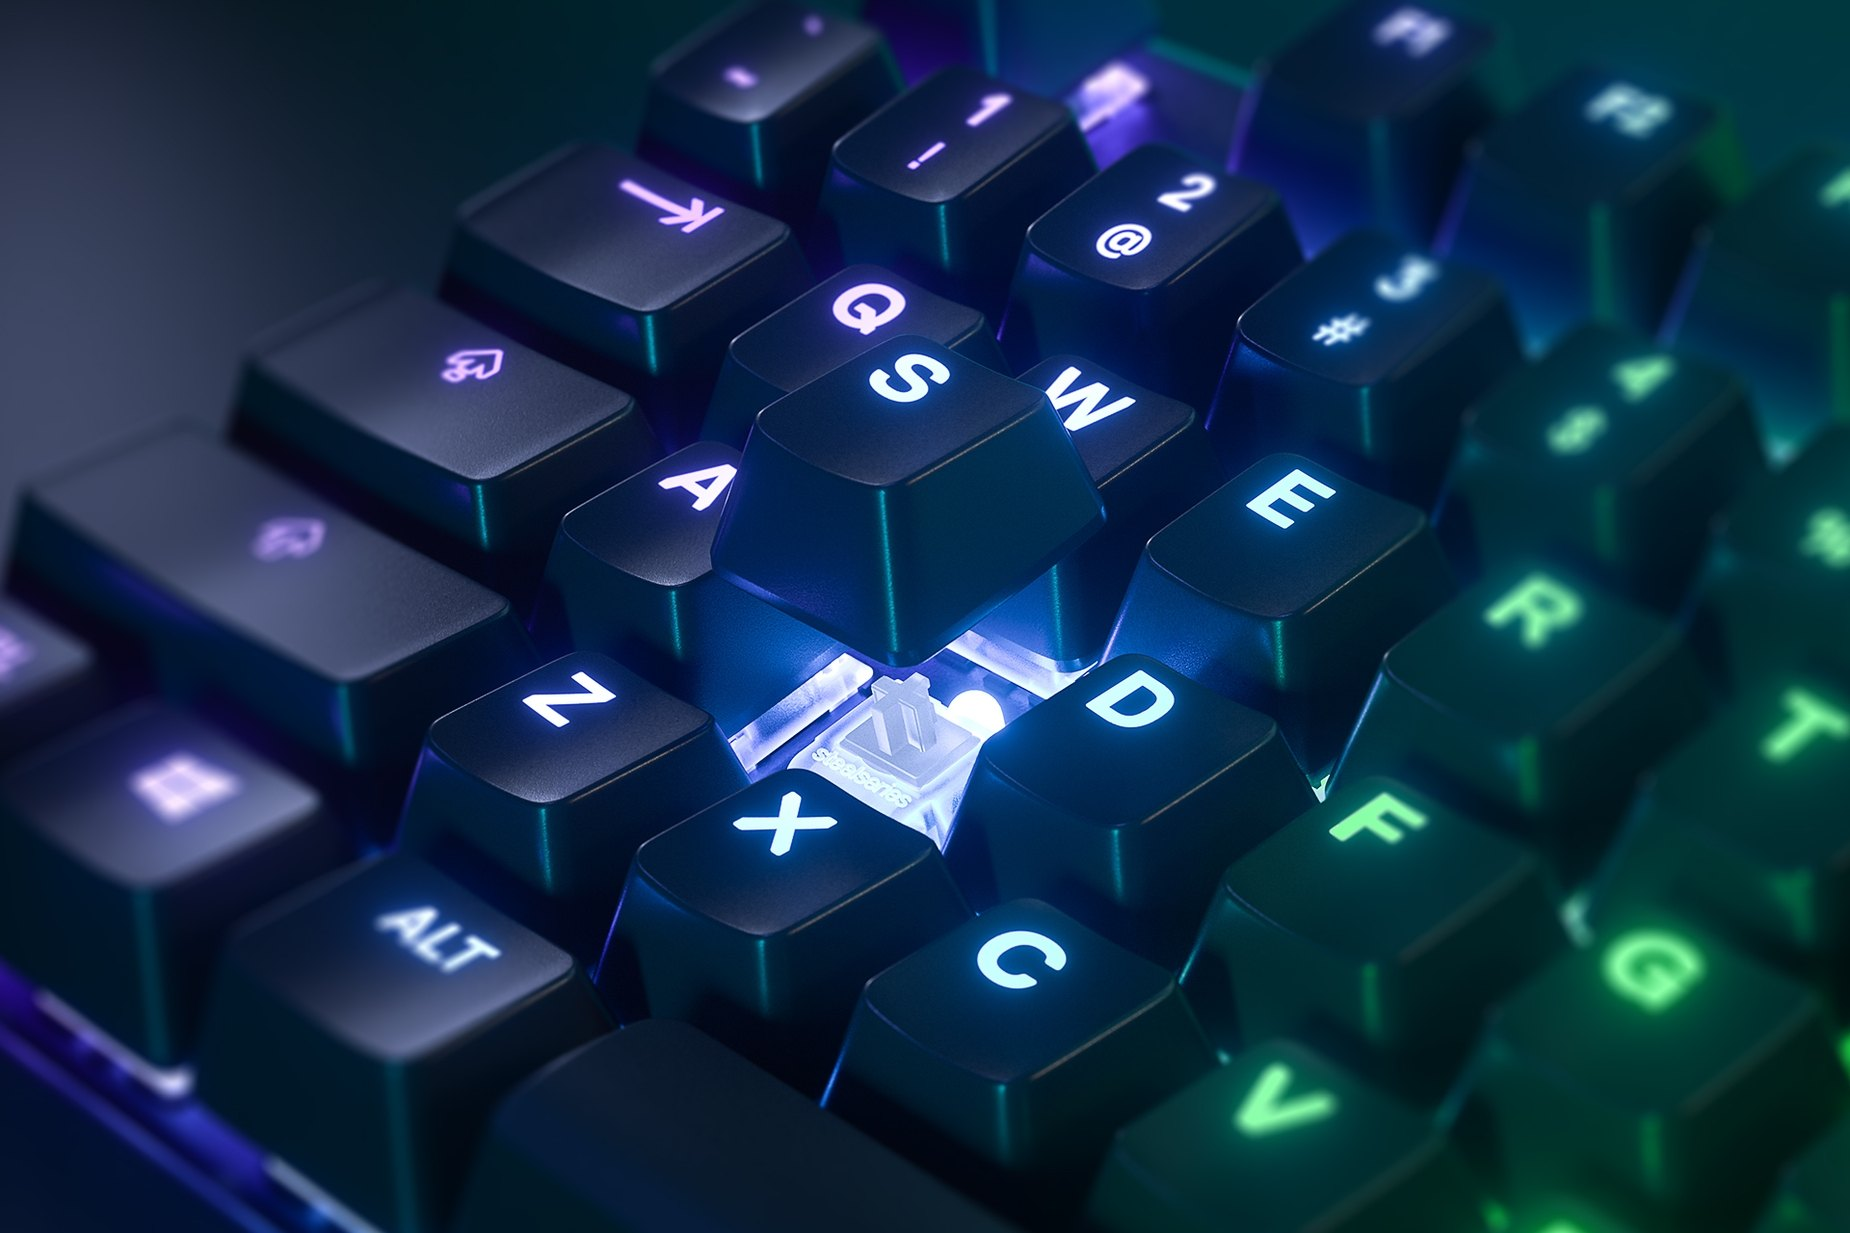 Zoomed in view of a single key on the French - Apex Pro gaming keyboard, the key is raised up to show the SteelSeries OmniPoint Adjustable Mechanical Switch underneath